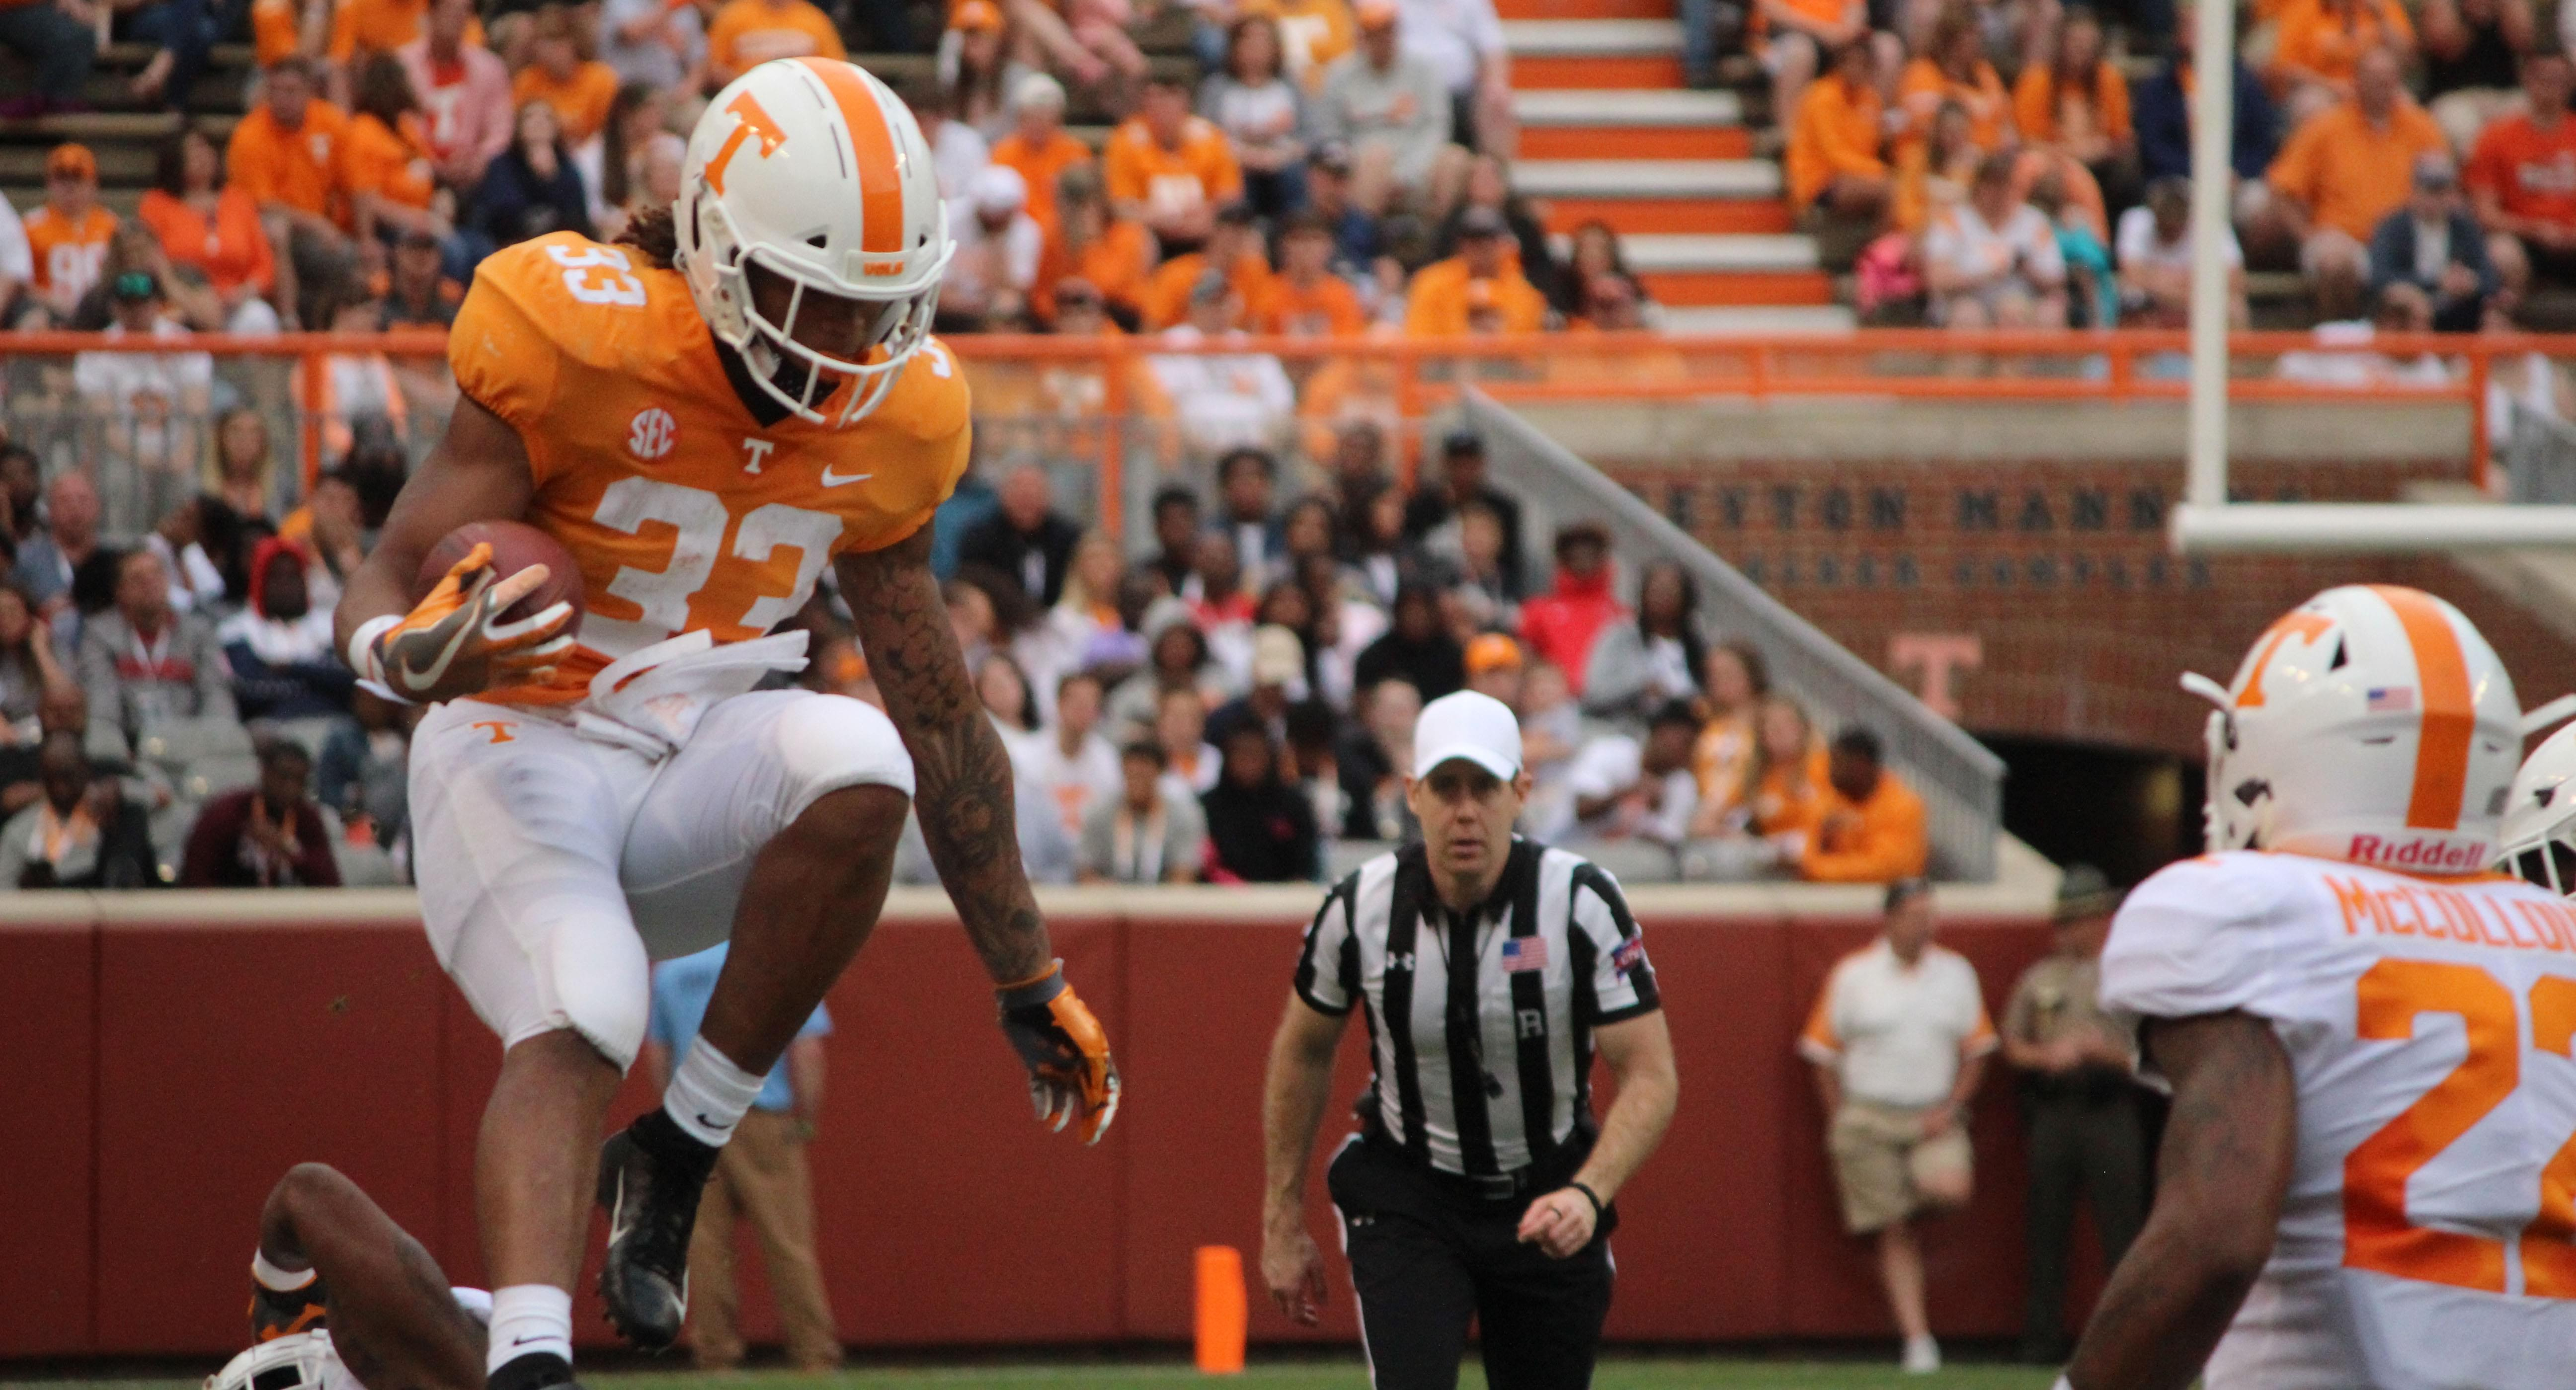 The Forman Files: Football Season Returns to Tennessee